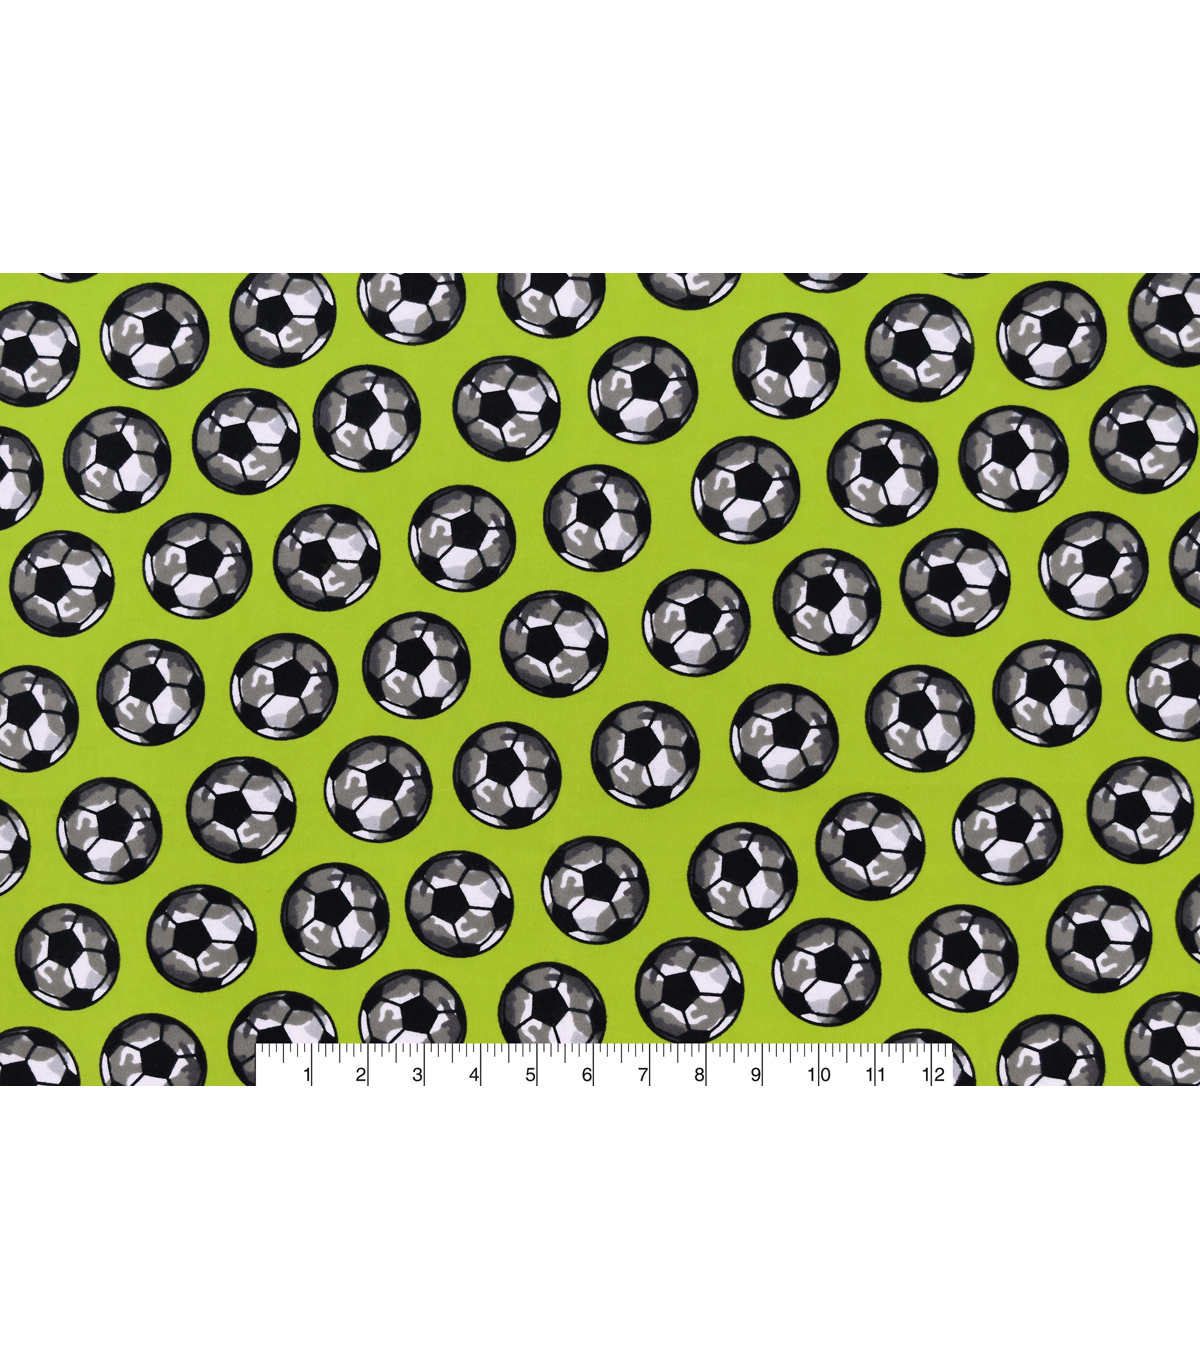 Snuggle Flannel Fabric 42\u0027\u0027-Camo Soccer Ball